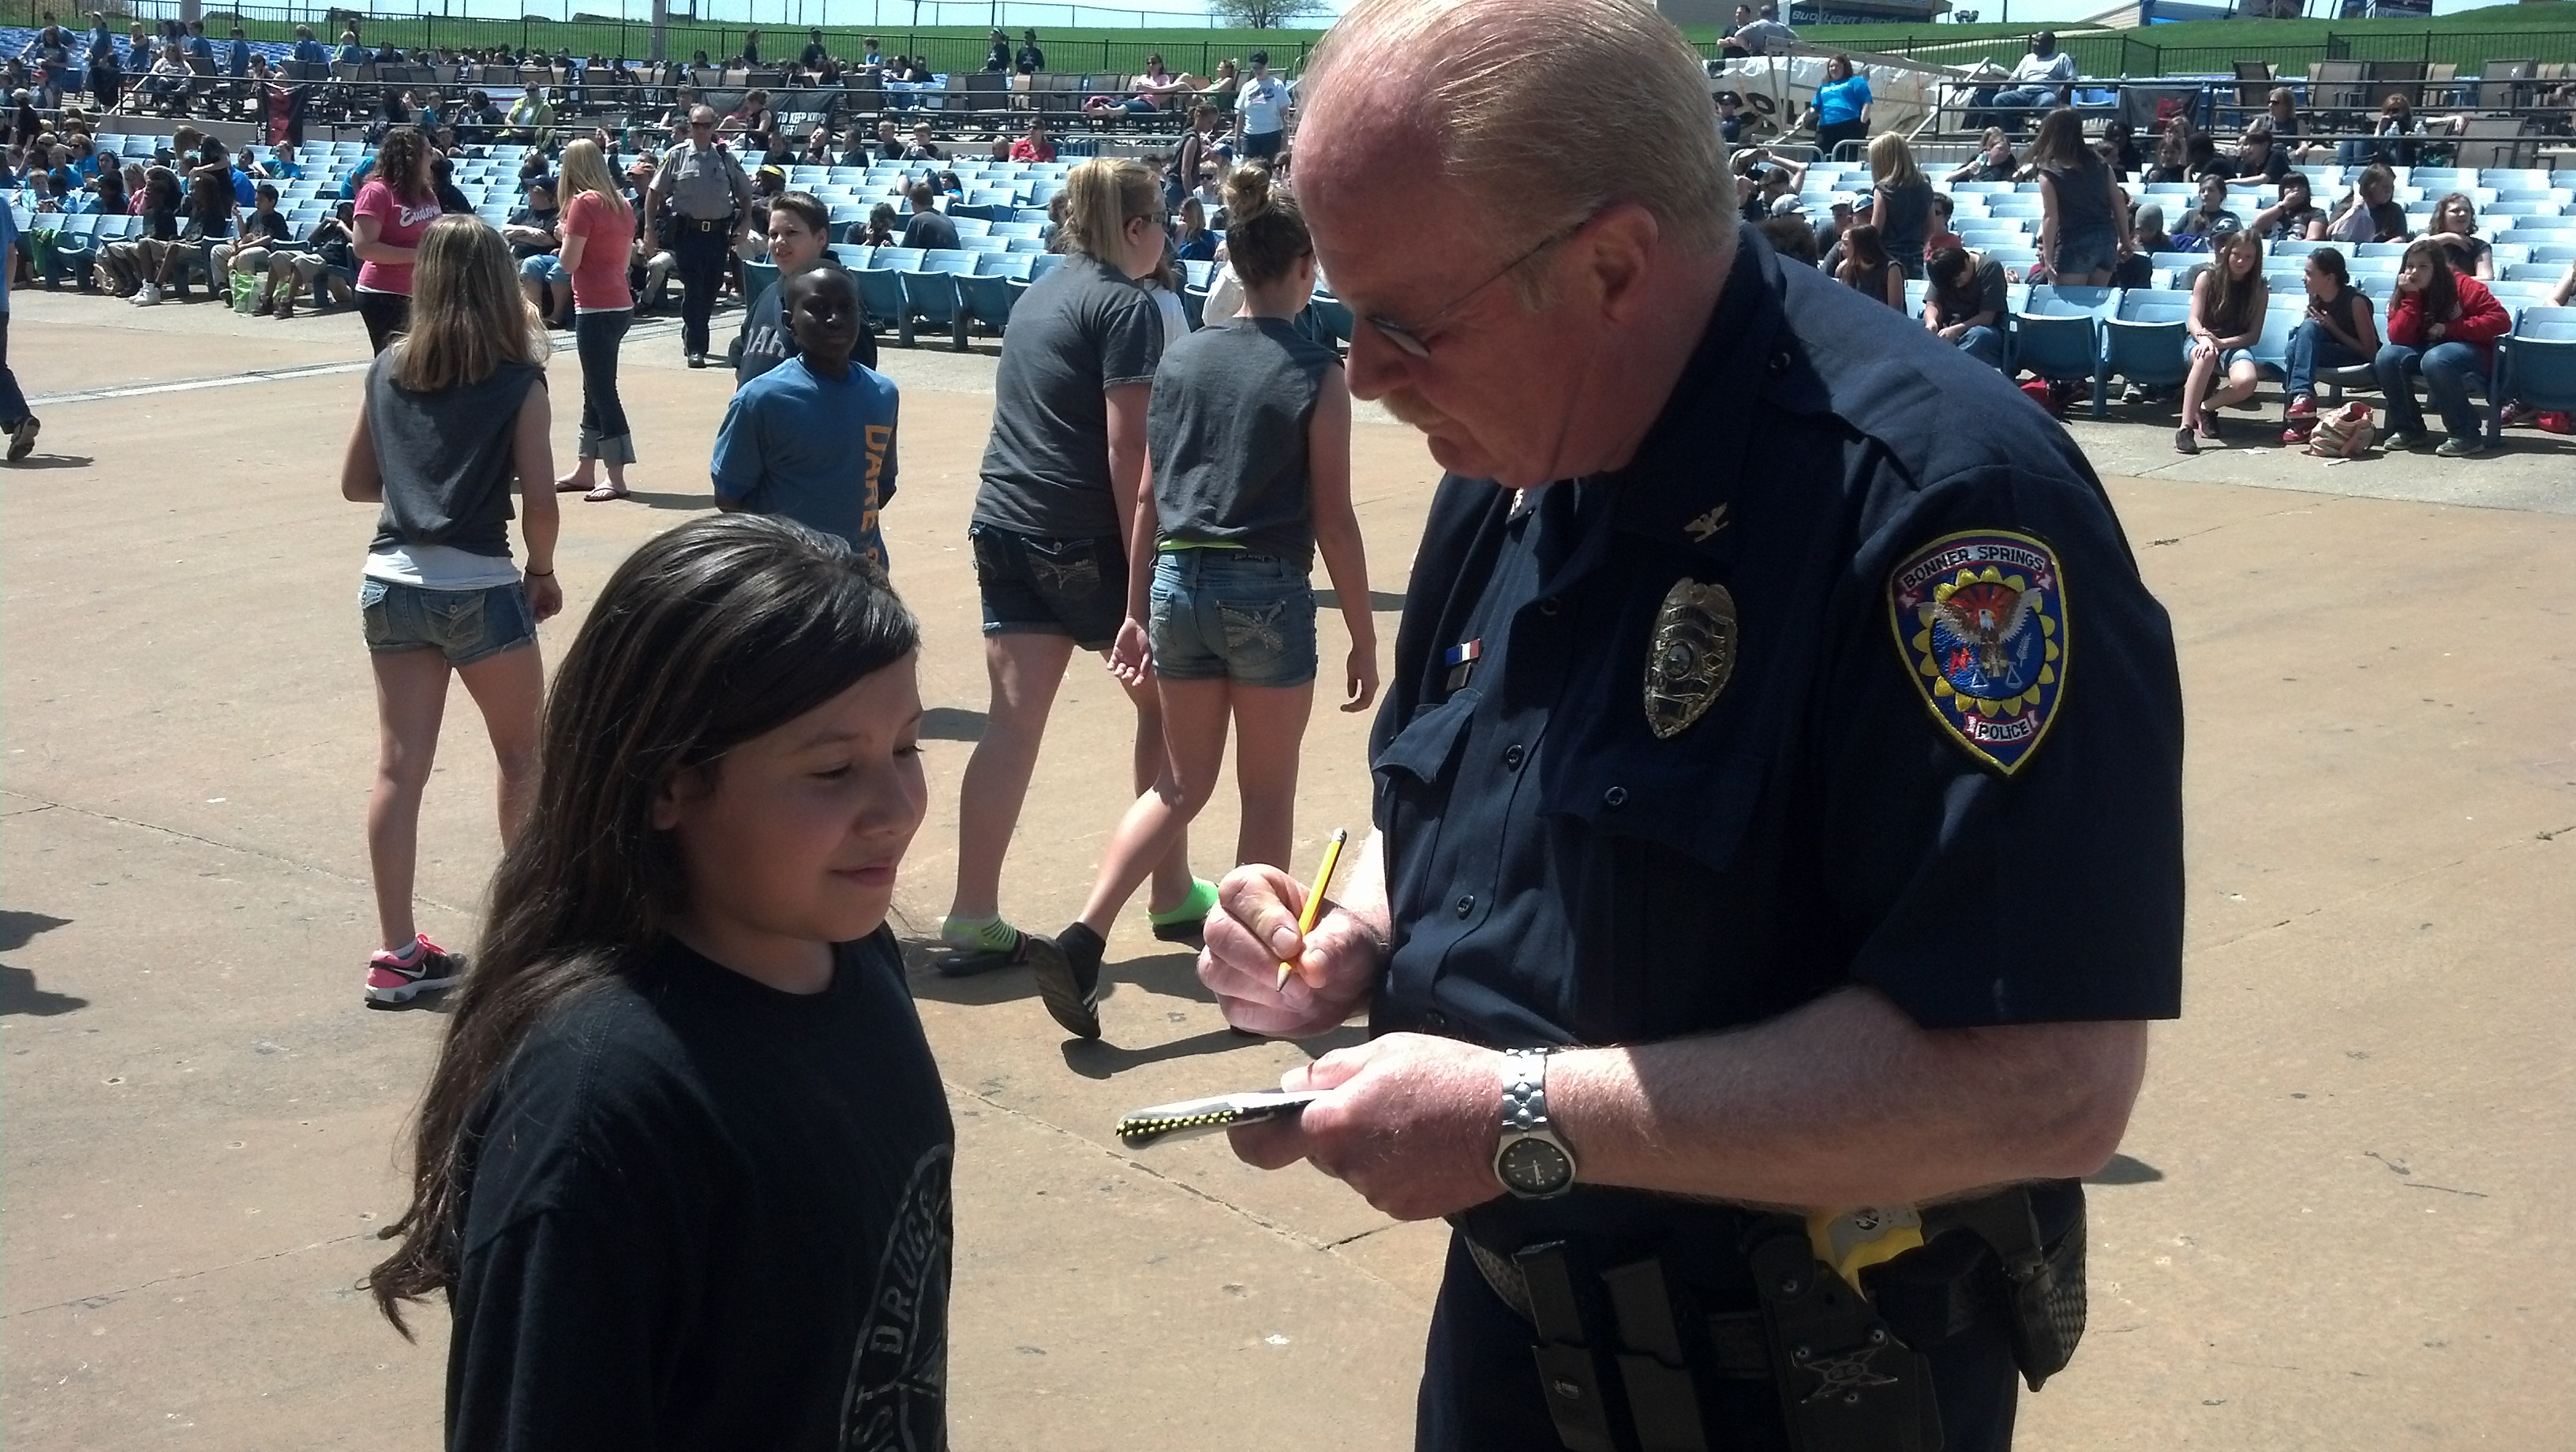 Chief Haley signing autograph